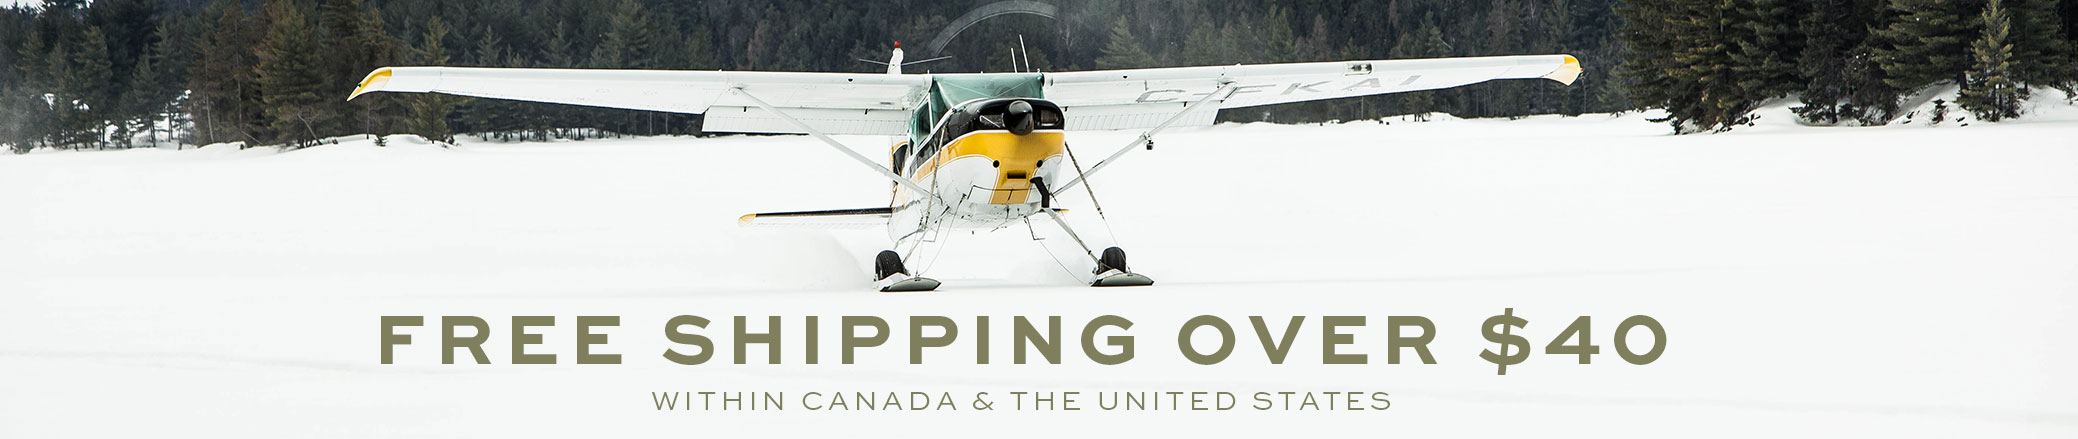 Free shipping over $40 within Canada & The United States